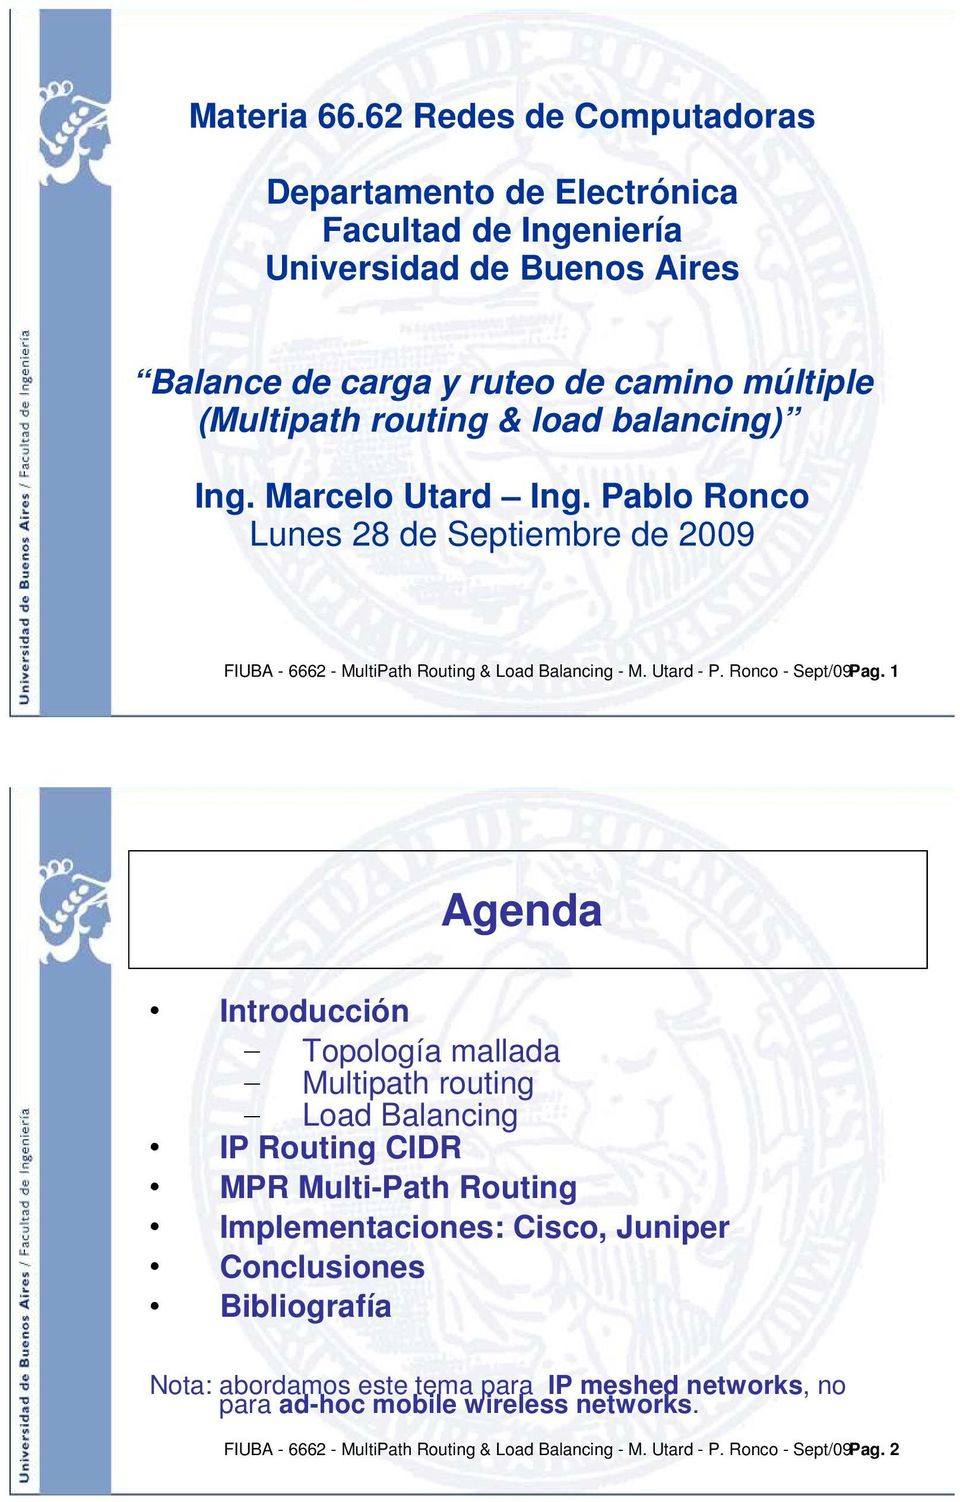 balancing) Ing. Marcelo Utard Ing. Pablo Ronco Lunes 28 de Septiembre de 2009 FIUBA - 6662 - MultiPath Routing & Load Balancing - M. Utard - P. Ronco - Sept/09Pag.